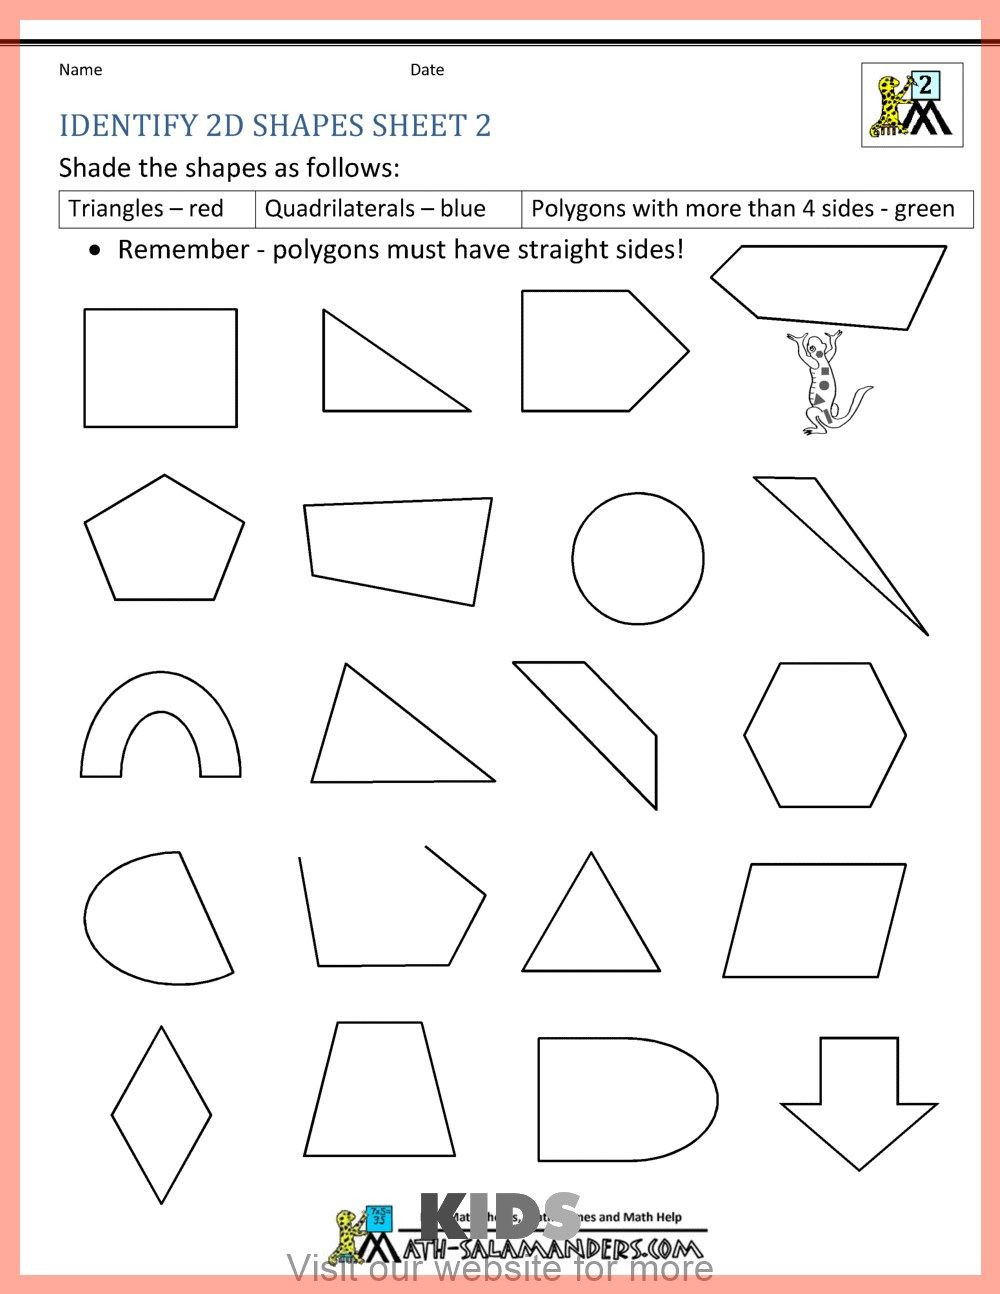 Second Grade Geometry Worksheets Homeschool Worksheet Middle School In 2020